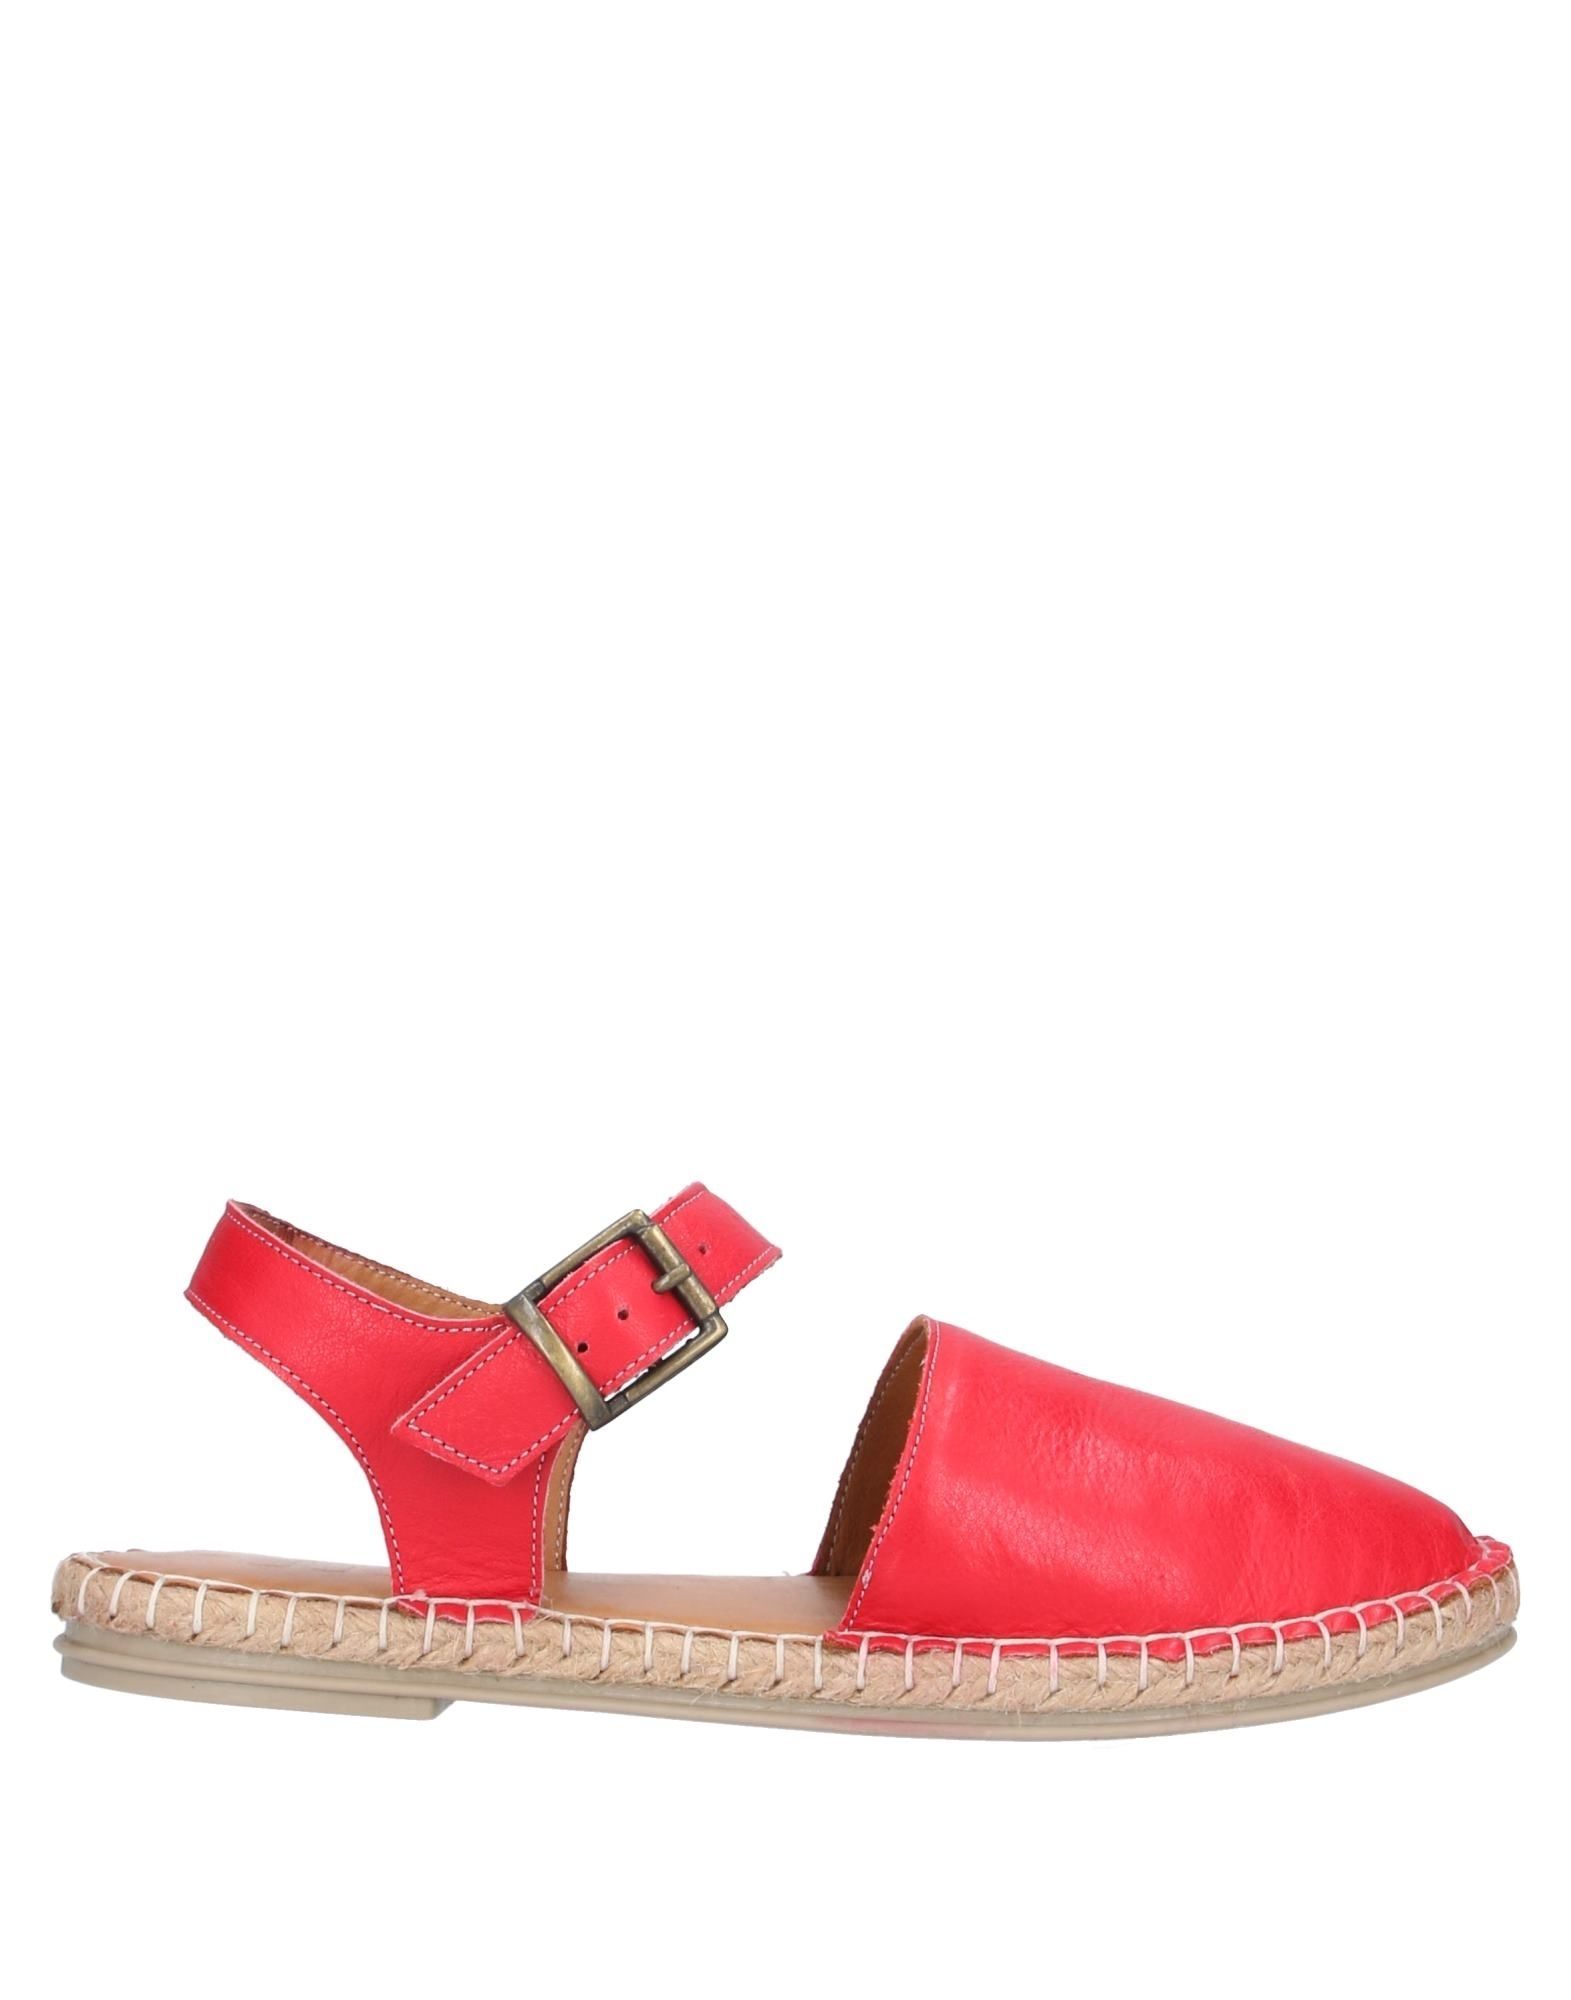 BUENO Espadrilles. leather, no appliqués, solid color, wrapping straps closure, round toeline, flat, leather lining, rubber sole, contains non-textile parts of animal origin. Soft Leather